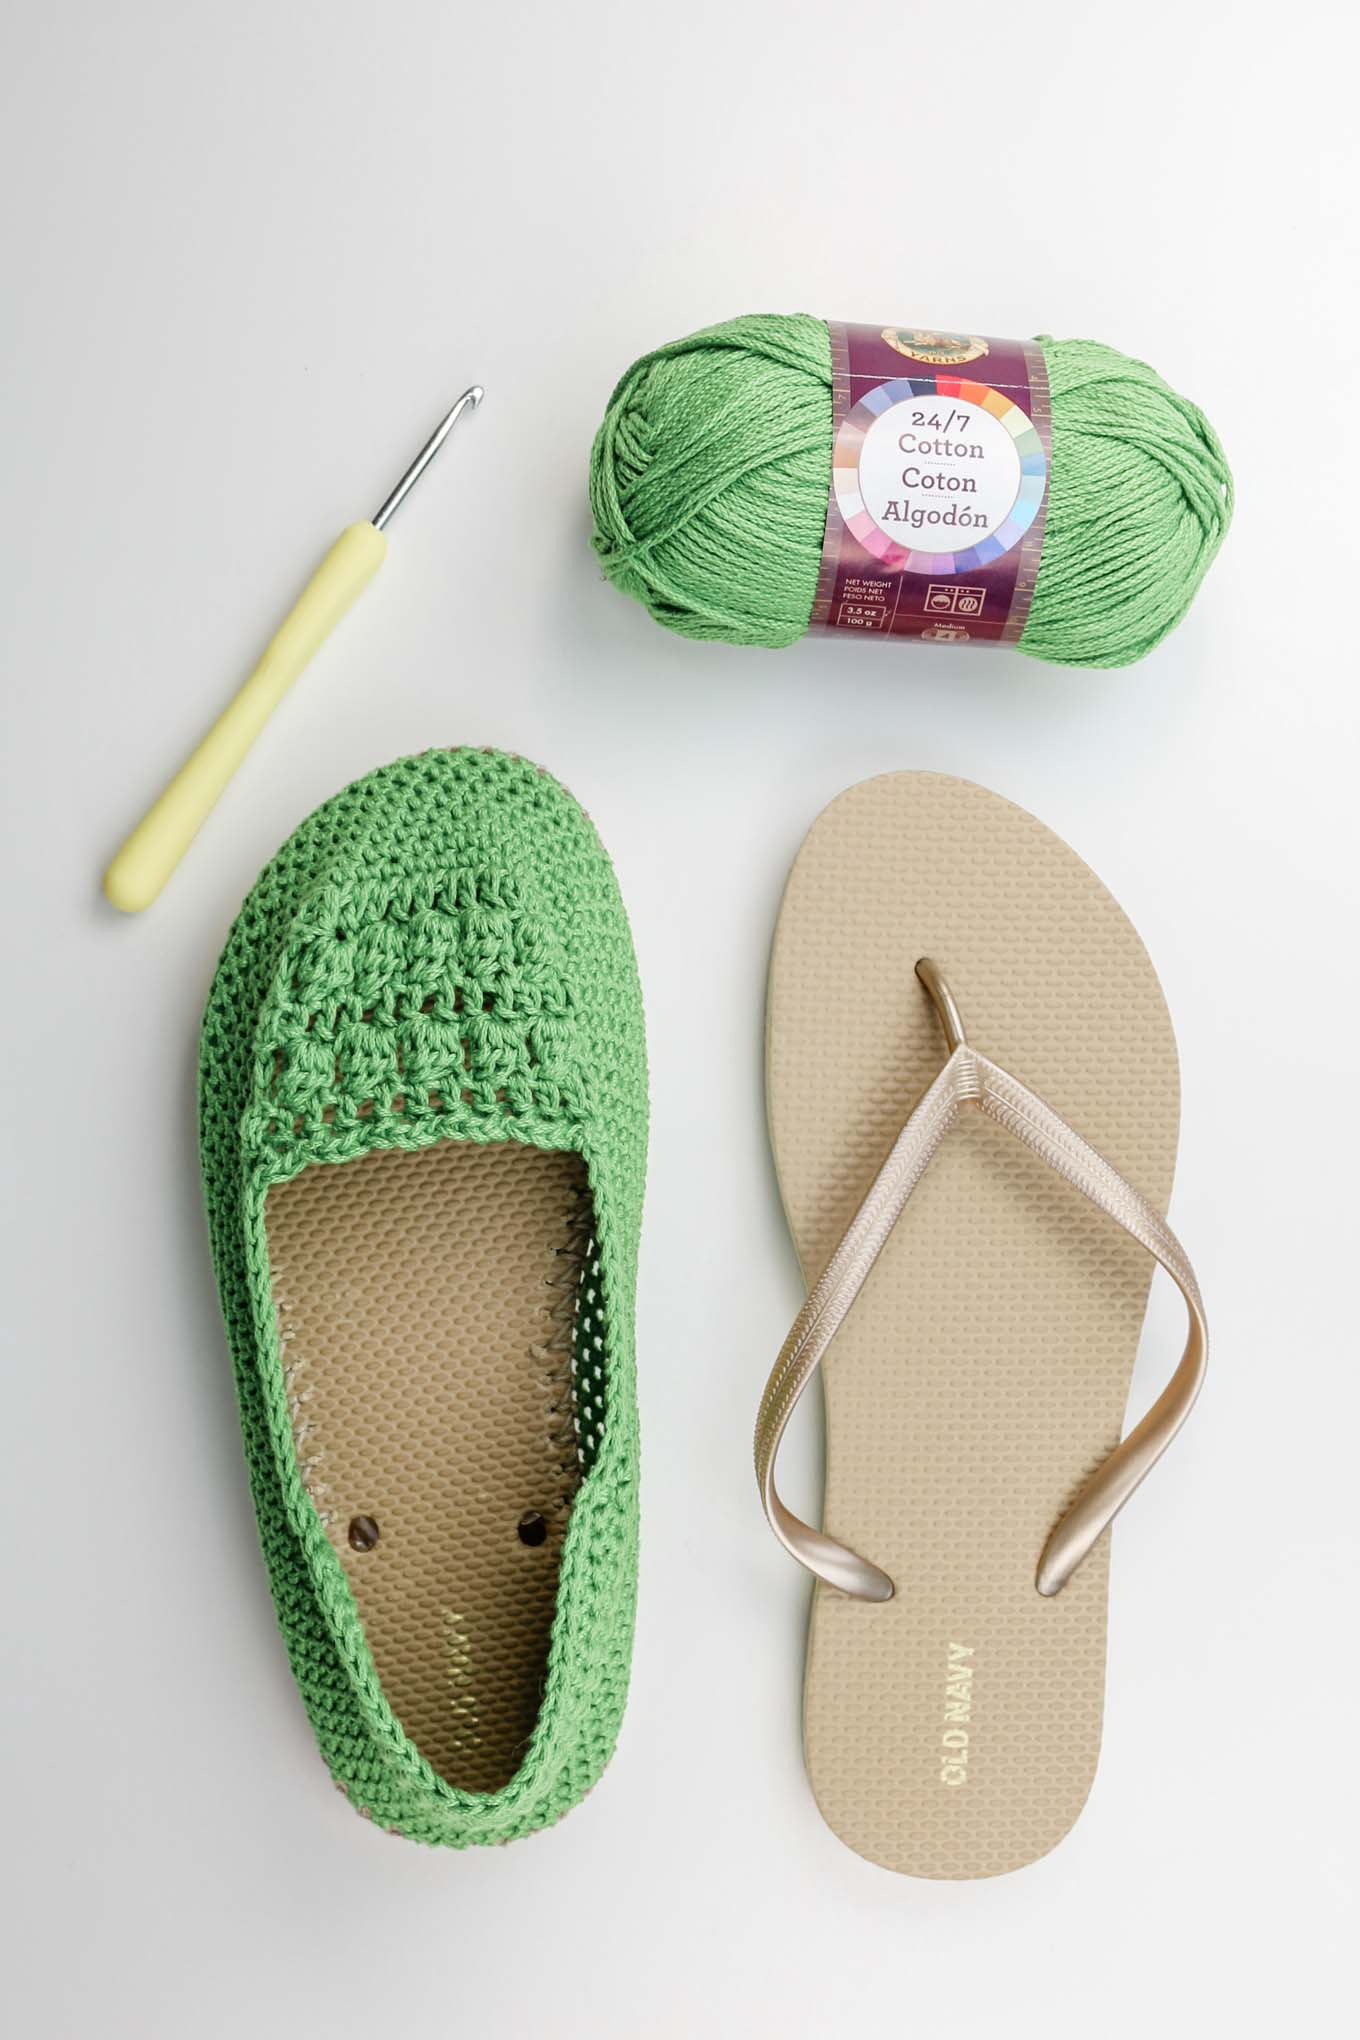 Learn how to crochet shoes with rubber flip flop soles using Lion Brand 24/7 Cotton.